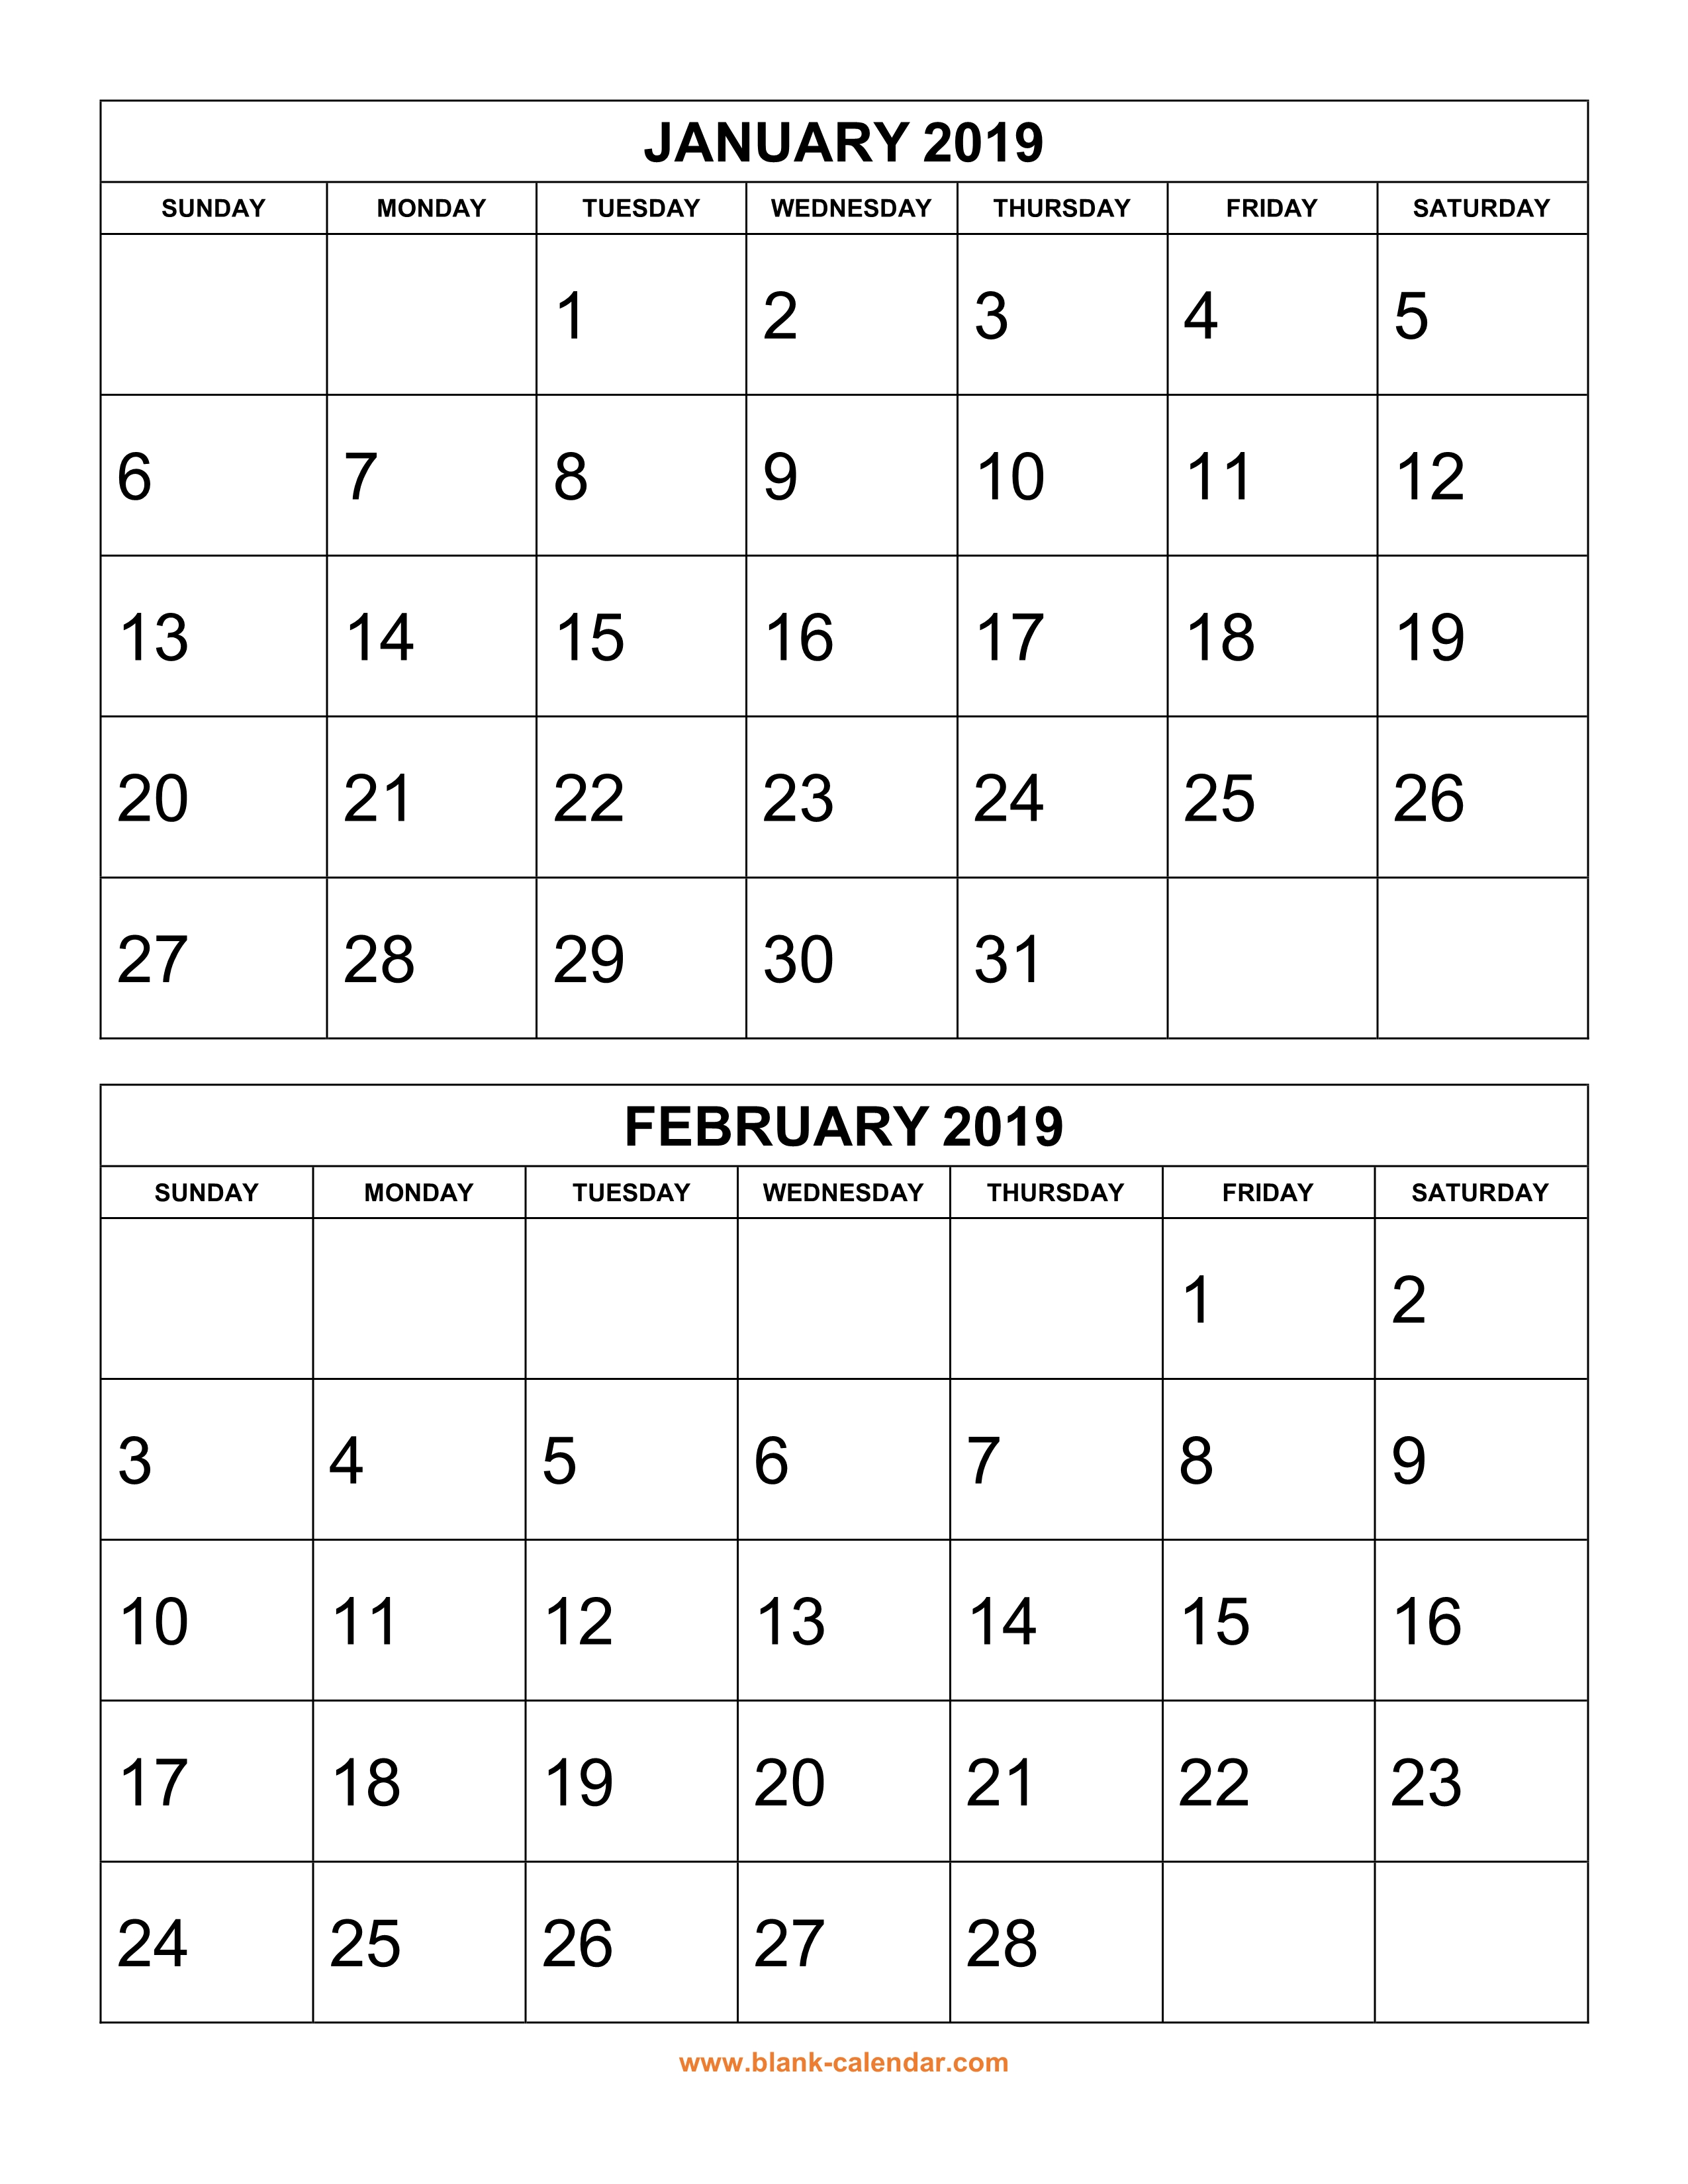 free download printable calendar 2019 2 months per page 6 pages vertical